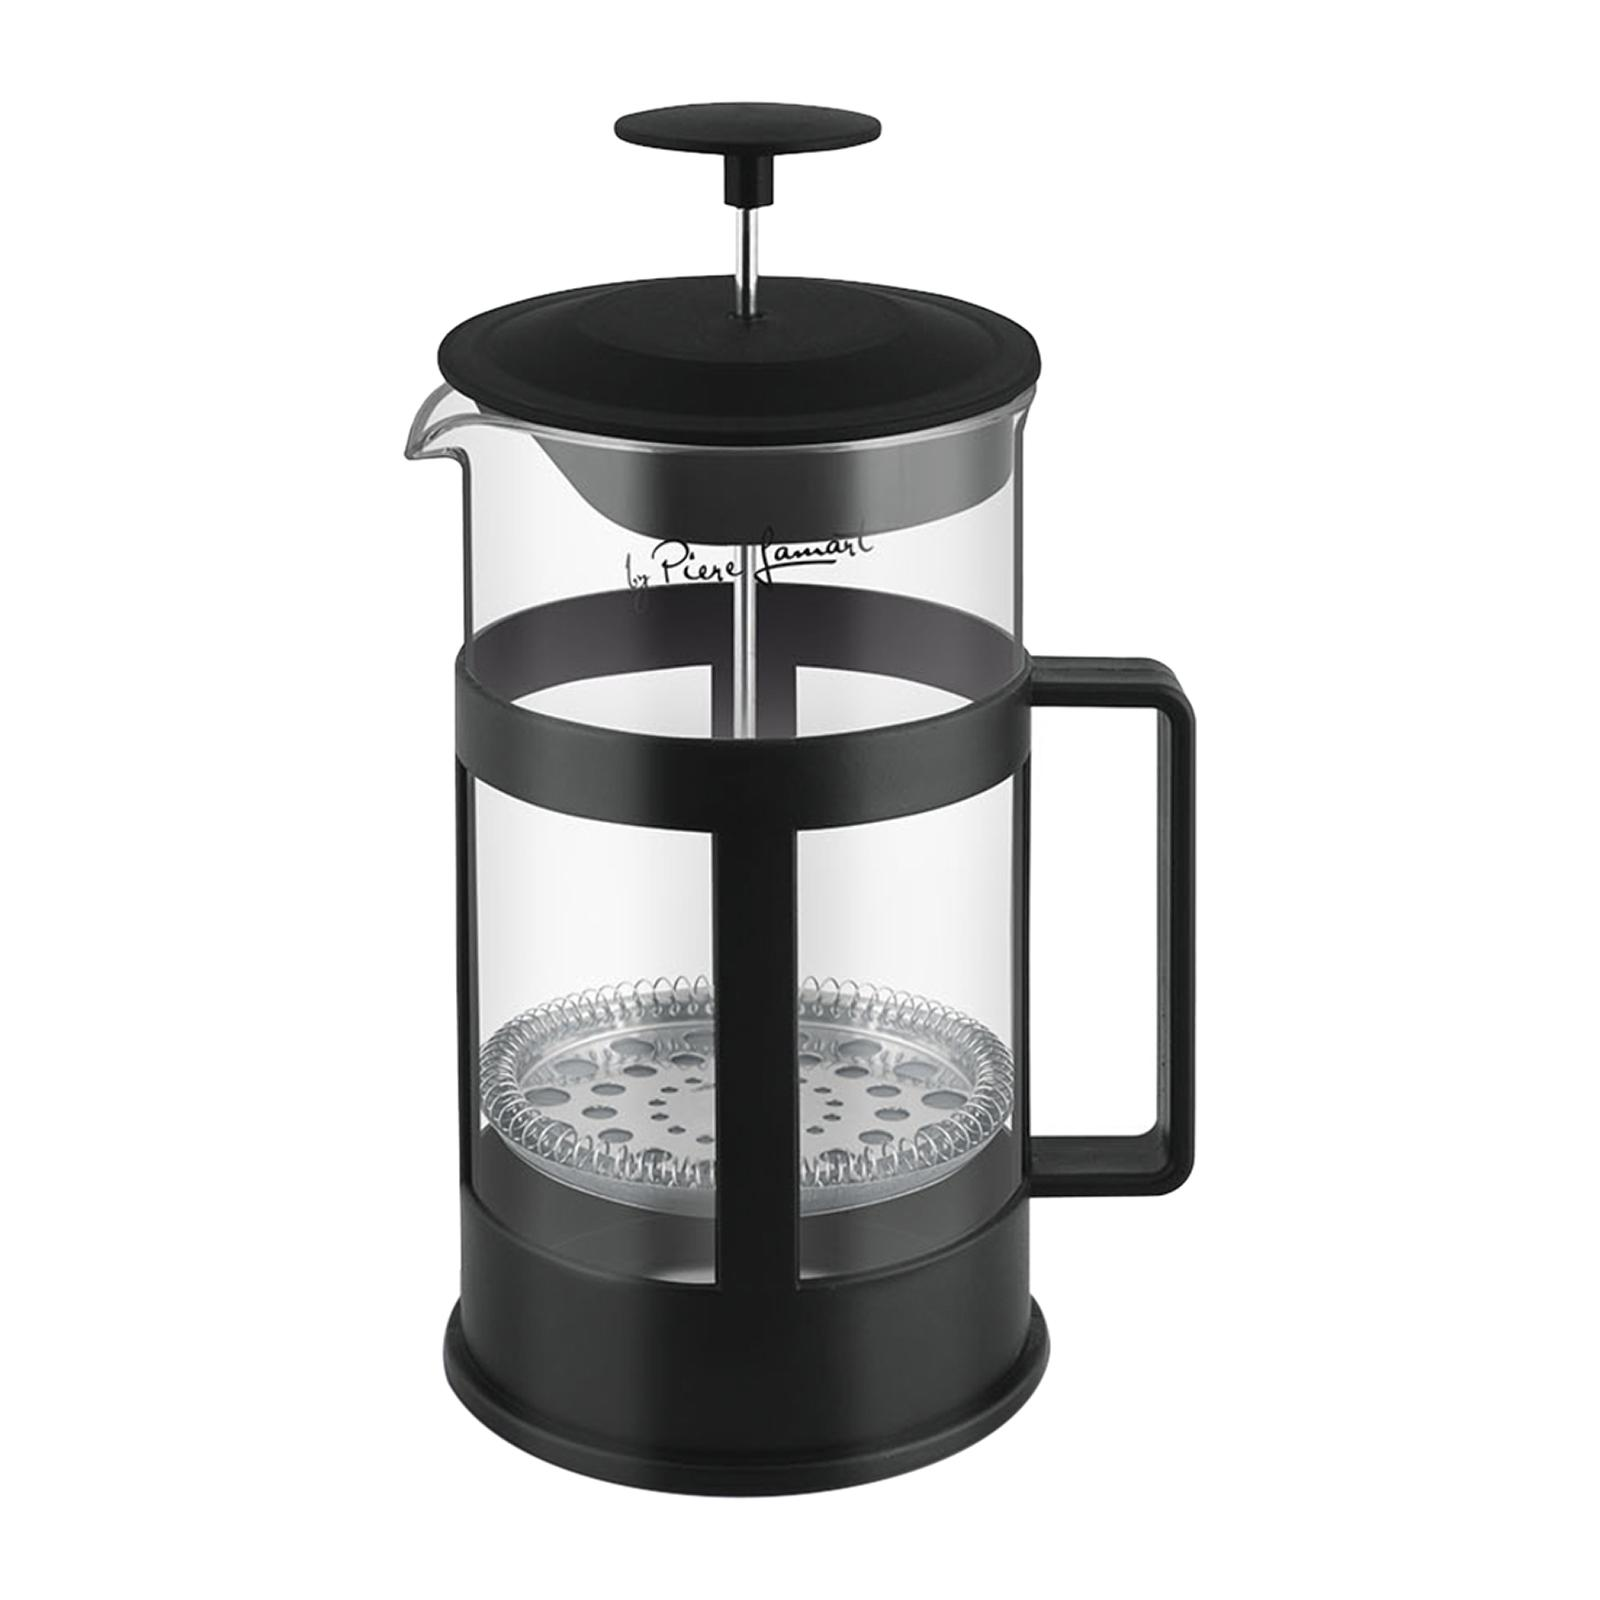 Lamart Tea and Coffee kettle - Press